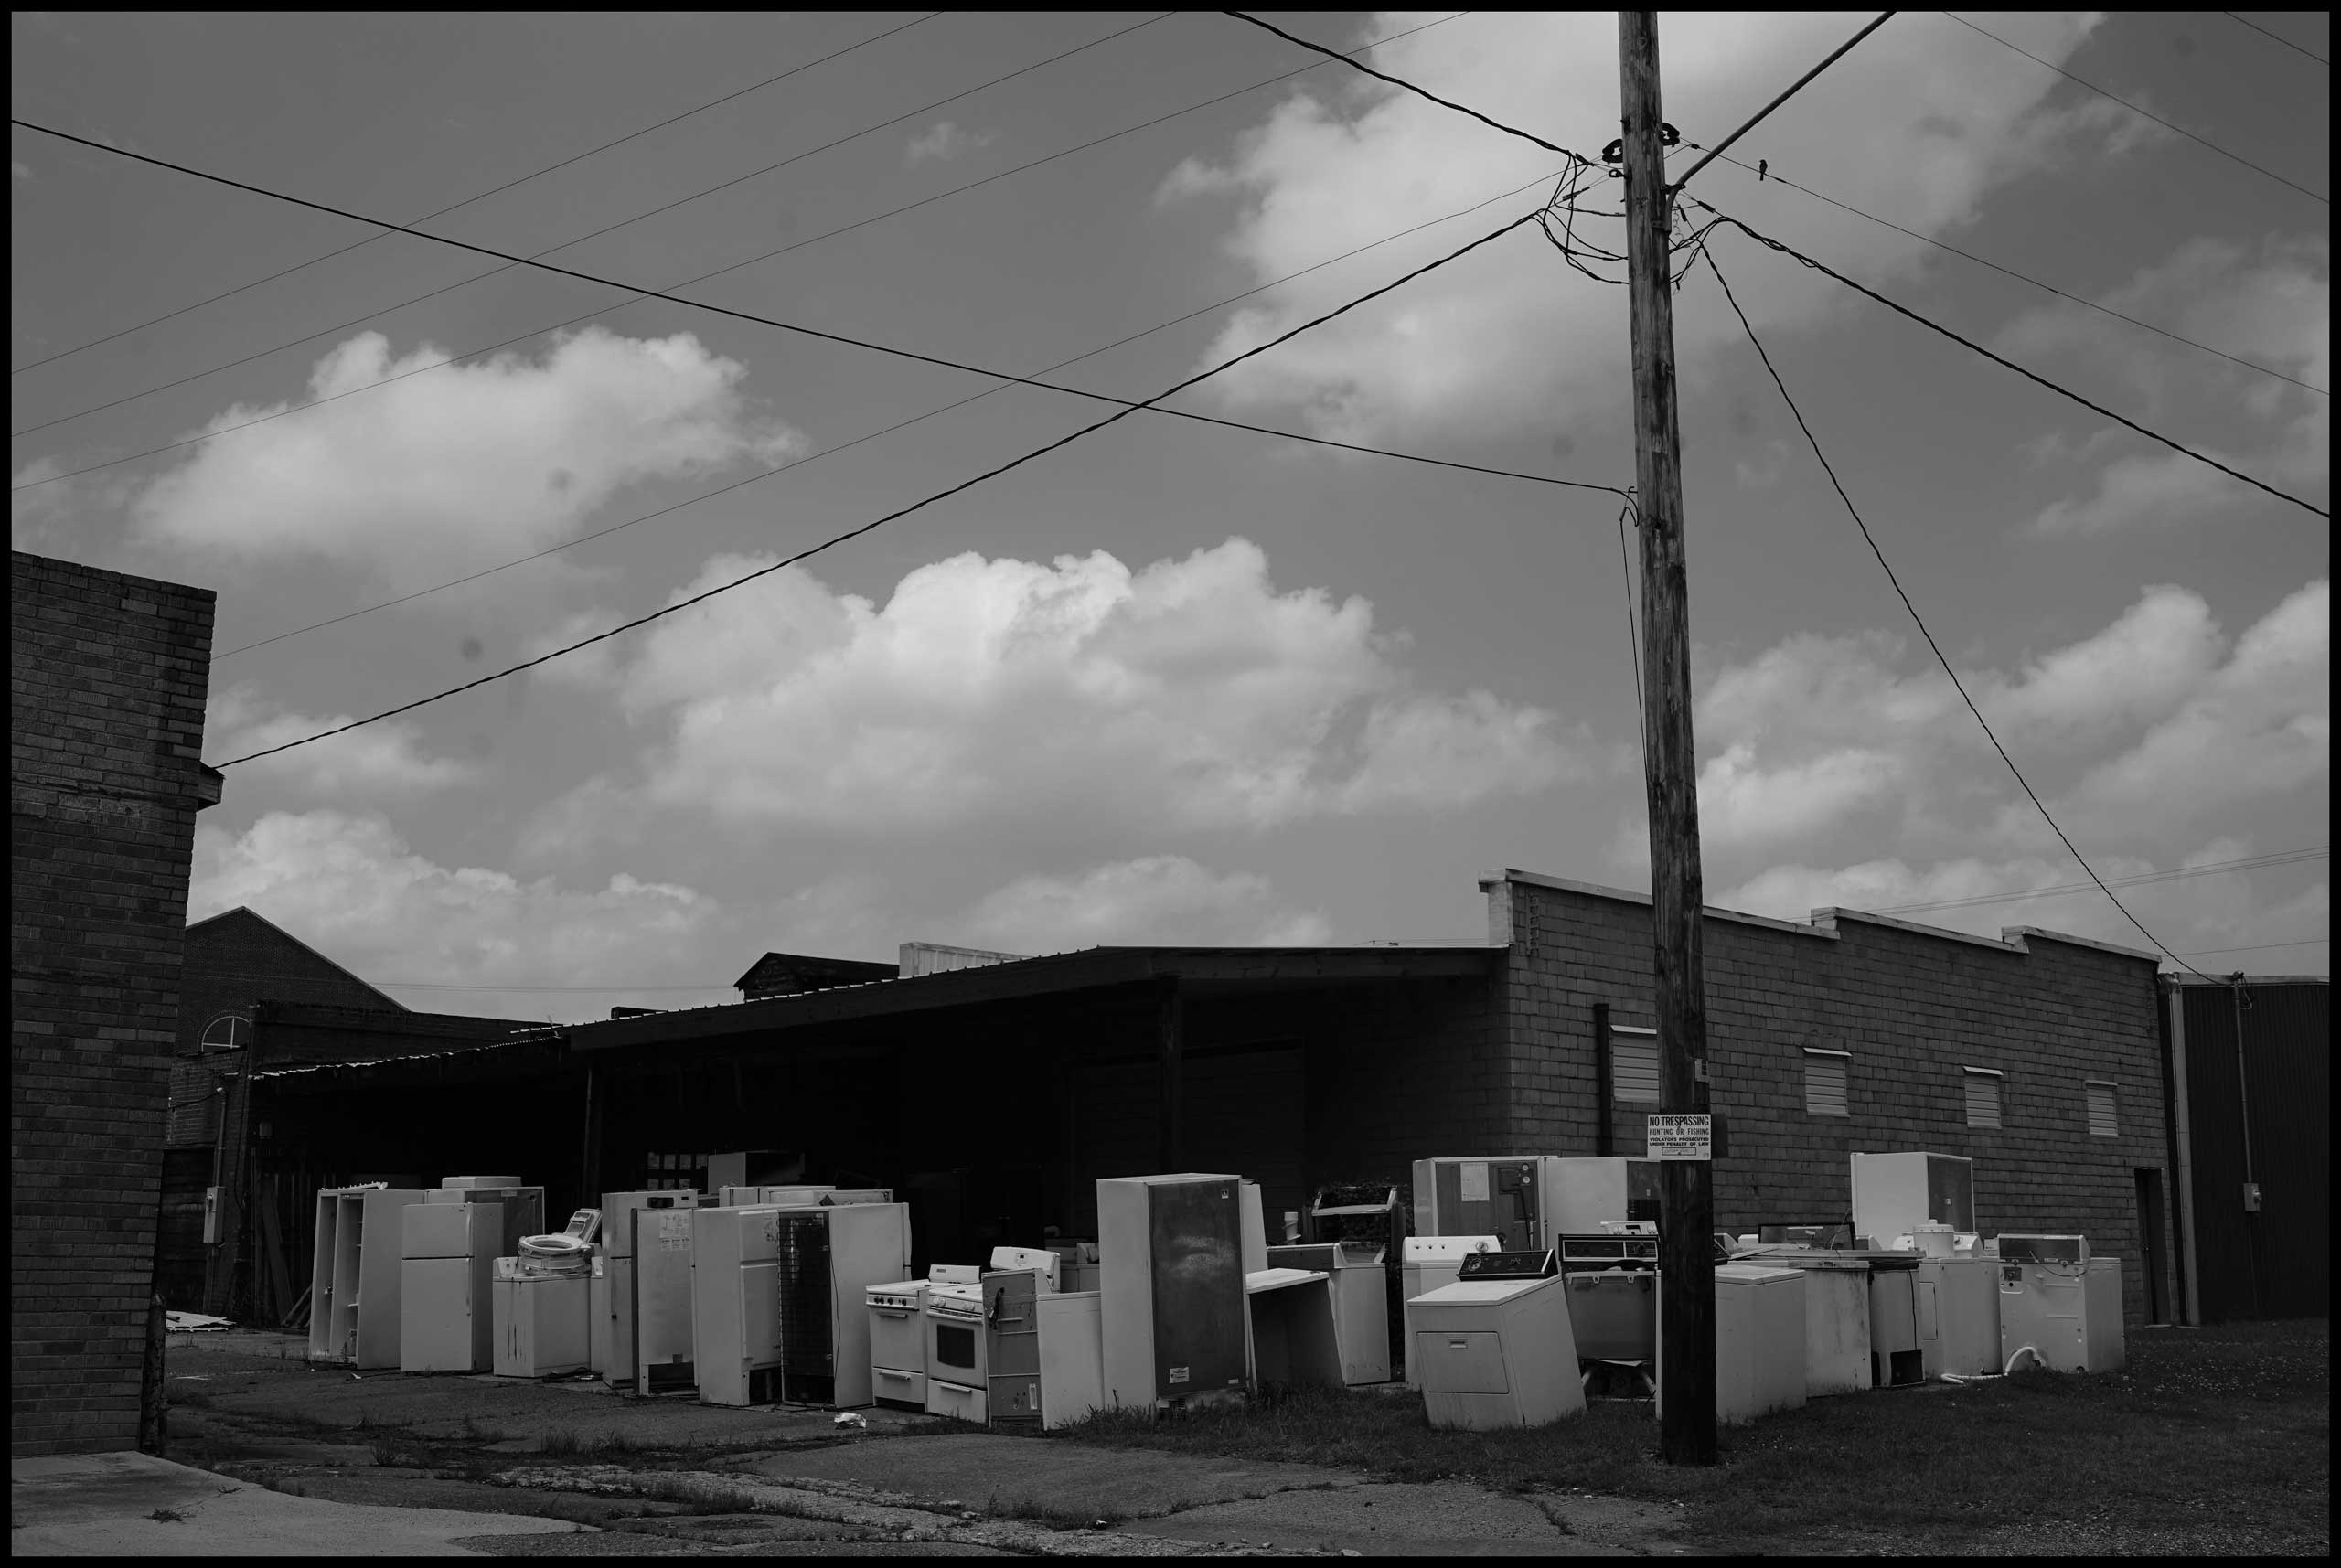 Cityscapes in Hope, Ark. 2016.